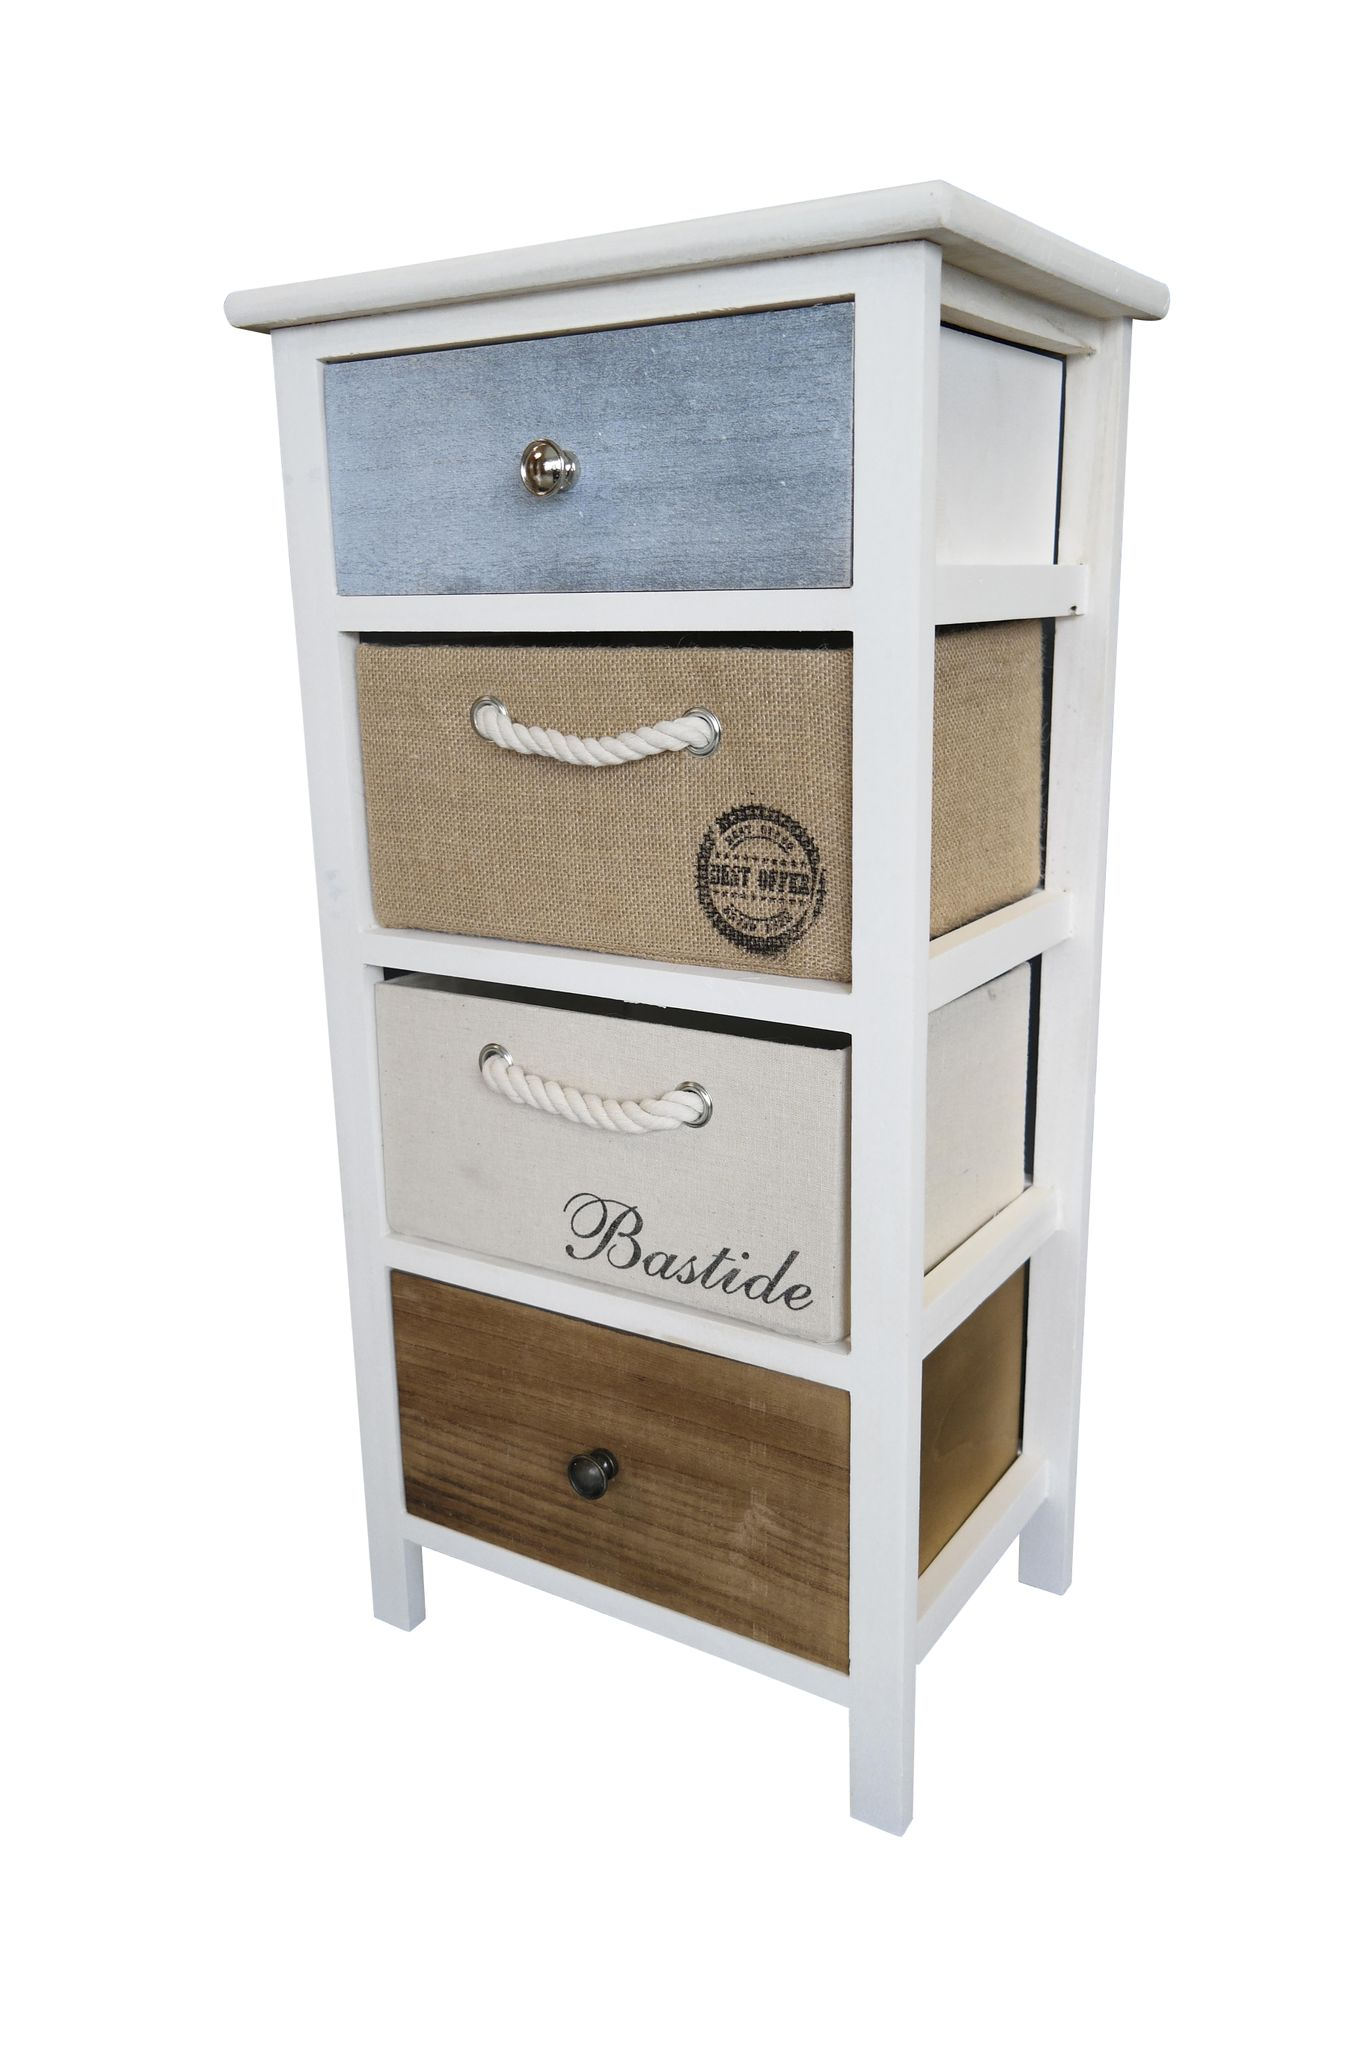 kommode schrank mit schubladen bunt landhaus shabby chic. Black Bedroom Furniture Sets. Home Design Ideas